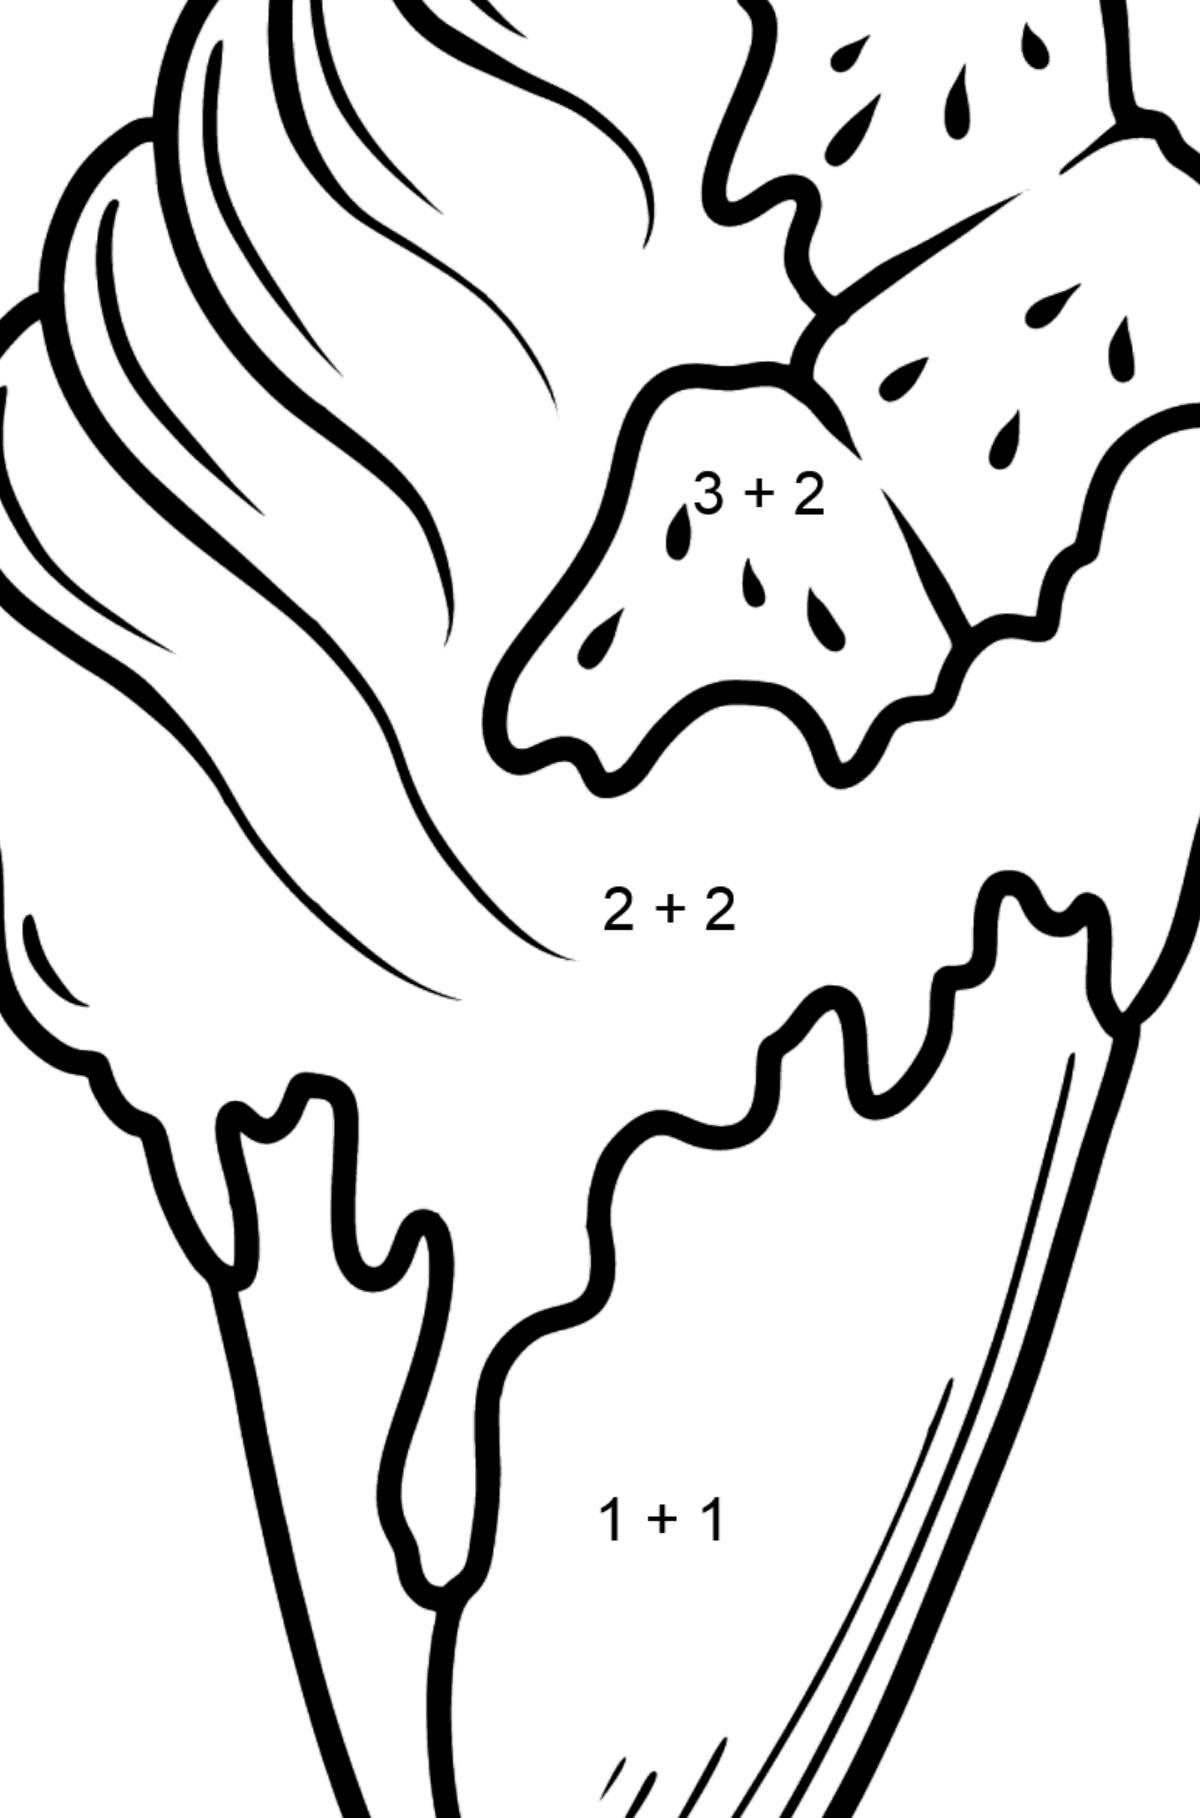 Banana Ice Cream and Jam Cone coloring page - Math Coloring - Addition for Kids